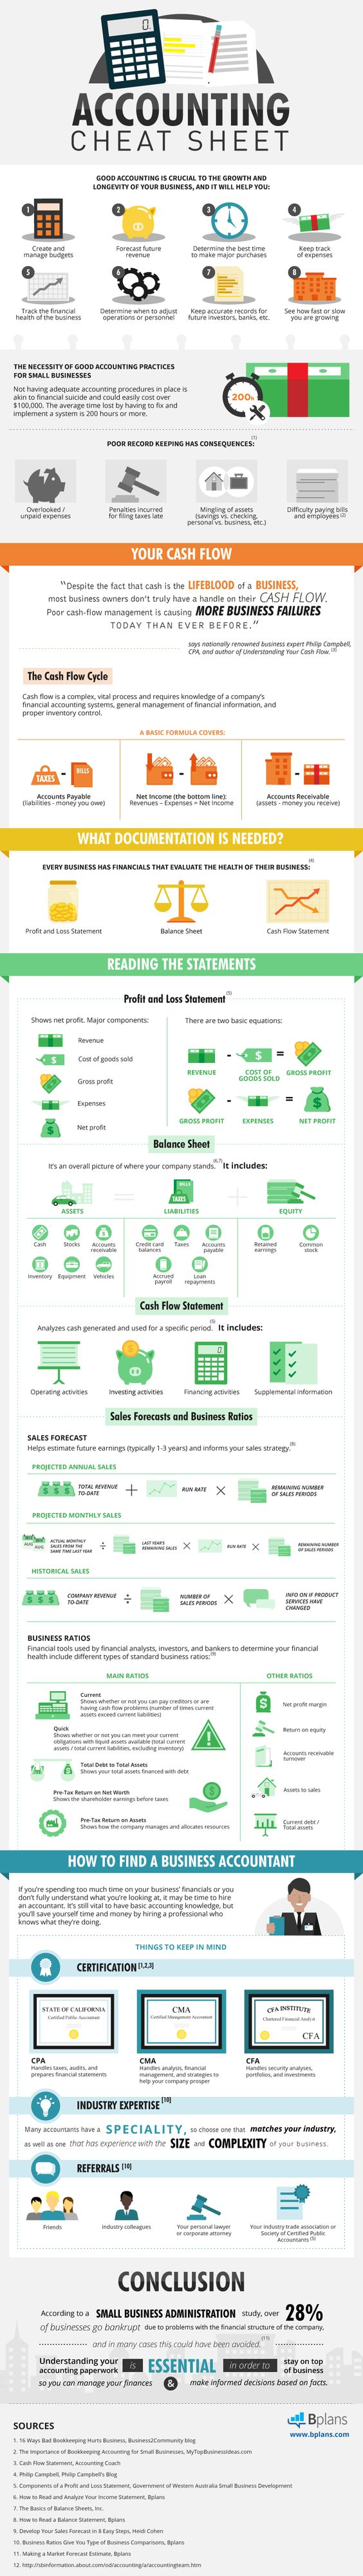 Accountant cheat sheet